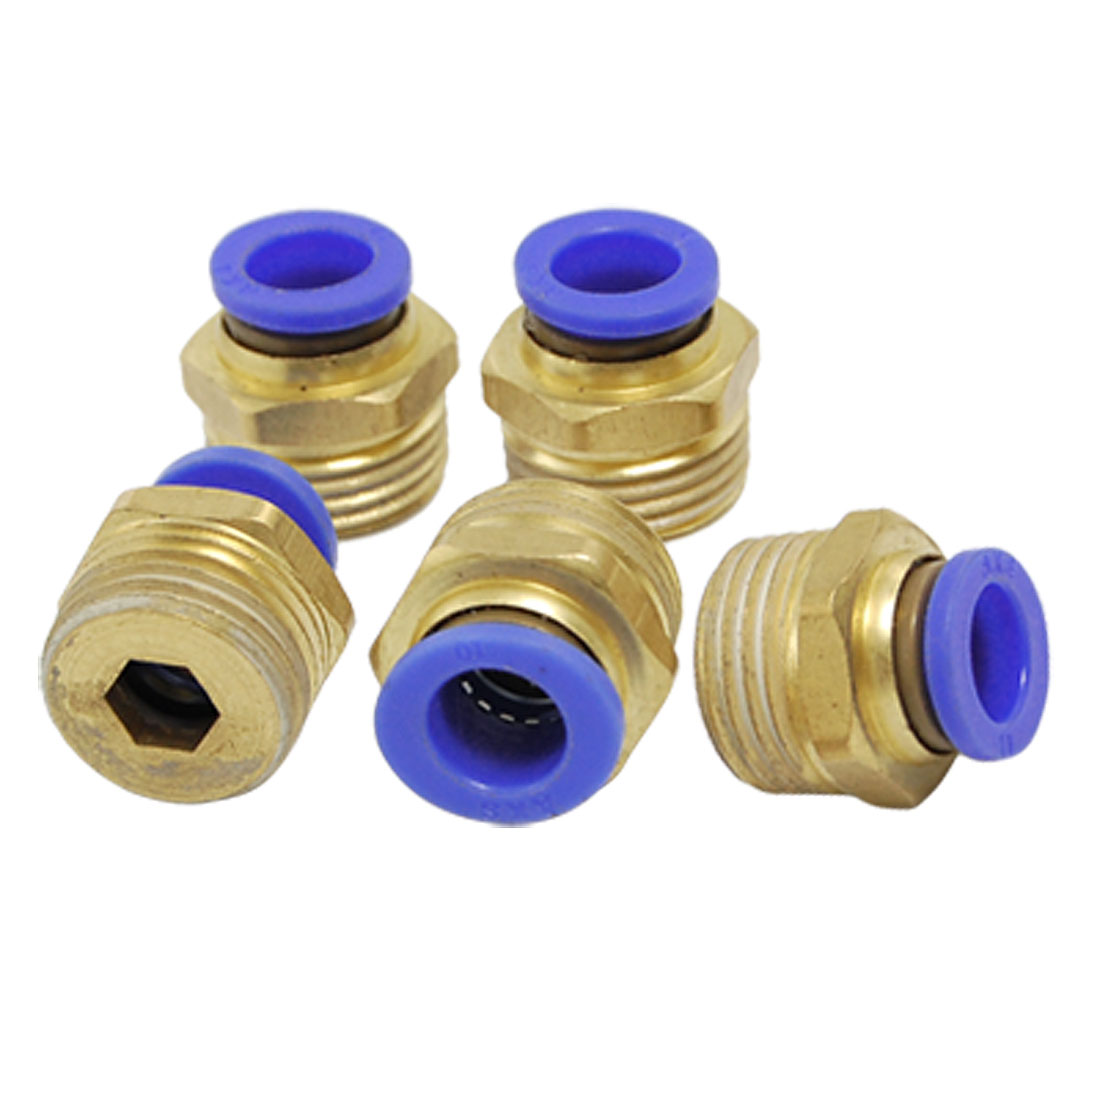 10mm x 20mm Threaded Quick Joint Pneumatic Fittings Connectors 5 Pcs